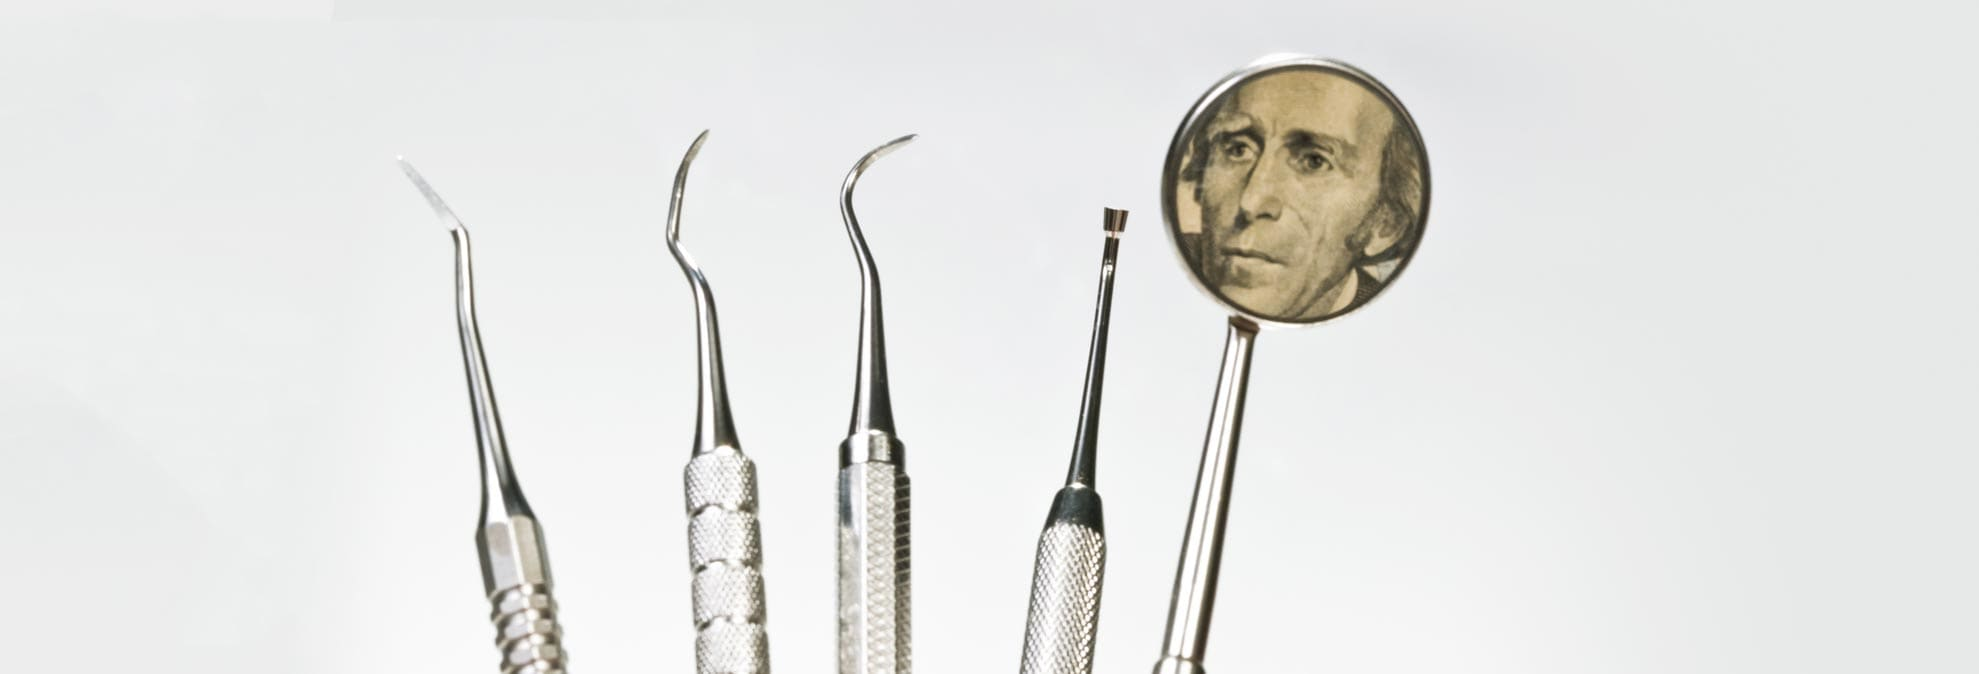 How to Save Money at the Dentist - Consumer Reports